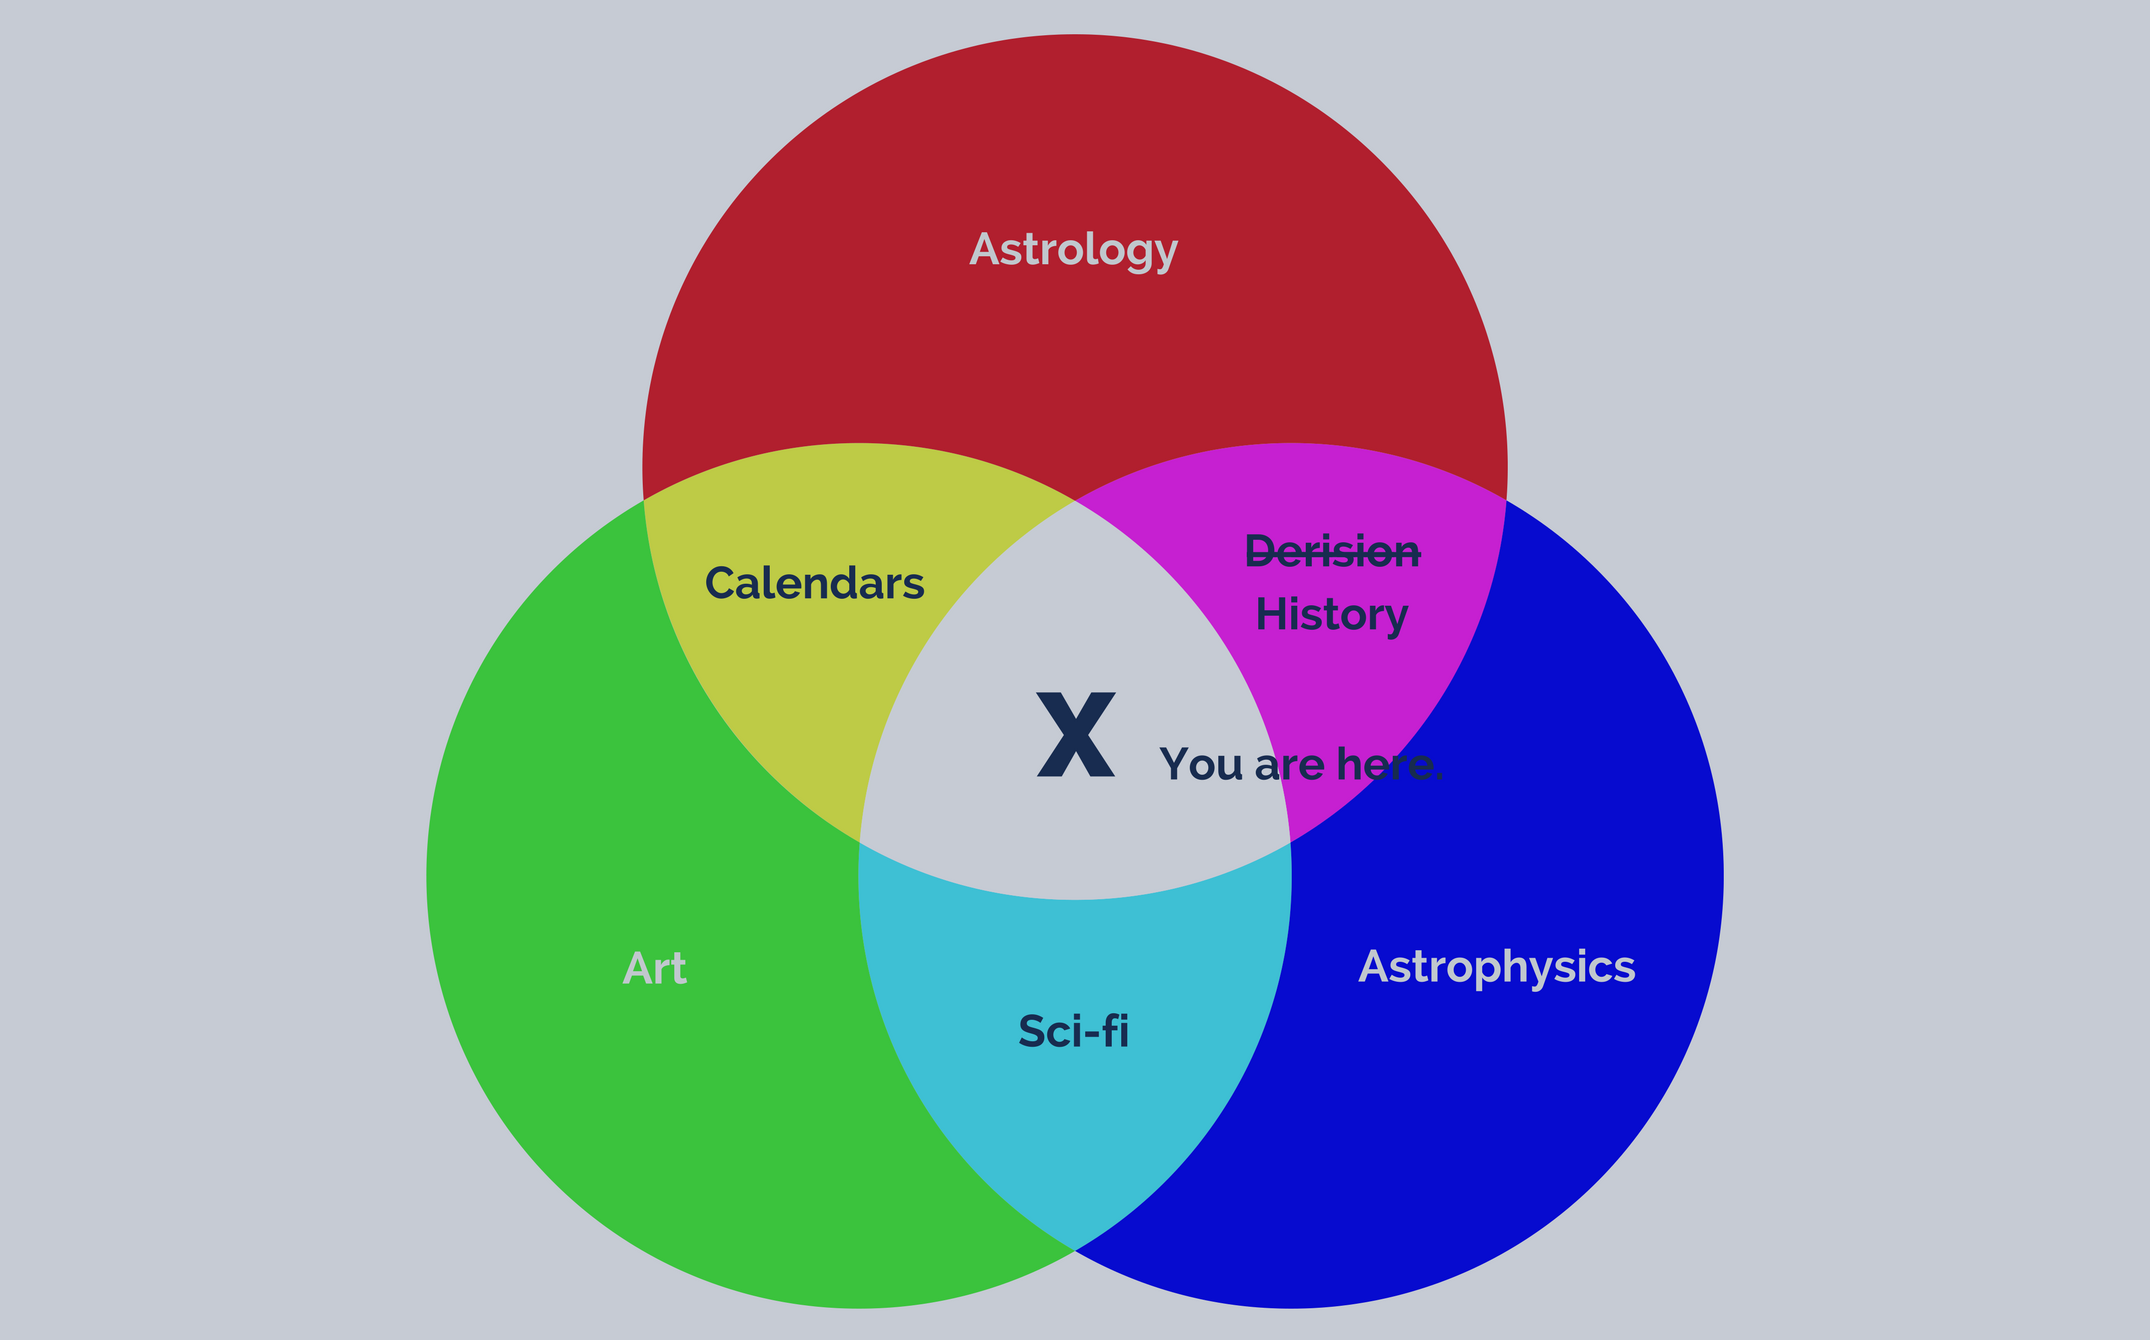 Venn diagram of the intersection of art, astrology, and astrophysics